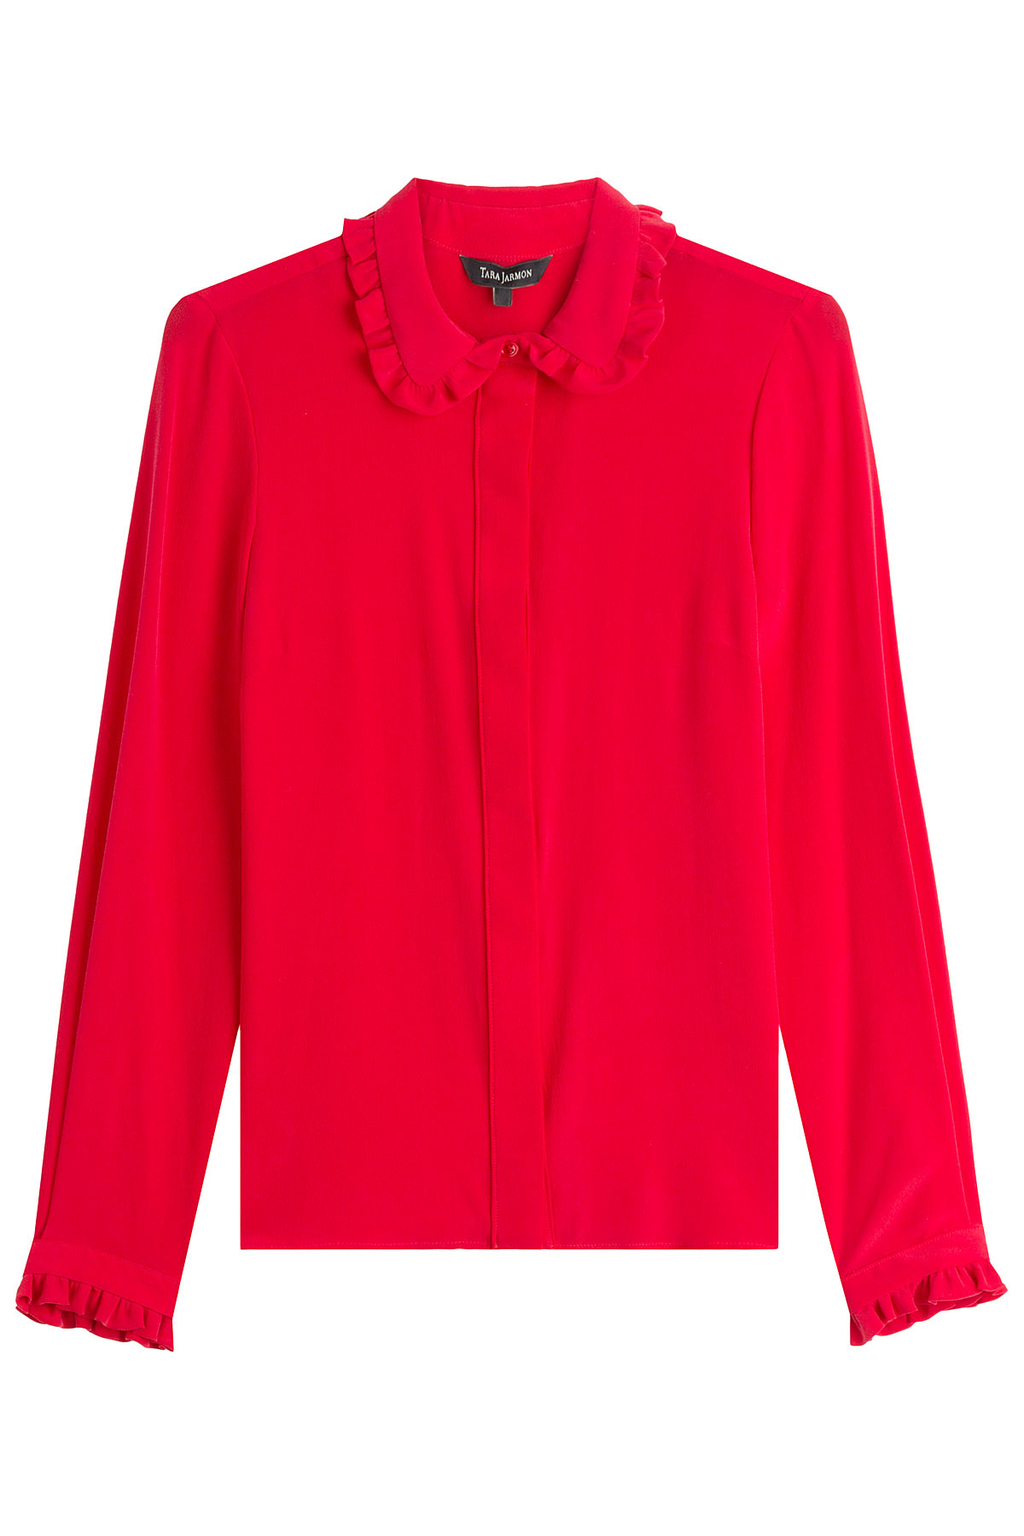 Silk Blouse Red - neckline: shirt collar/peter pan/zip with opening; pattern: plain; style: blouse; predominant colour: true red; occasions: work, occasion, creative work; length: standard; fibres: silk - 100%; fit: straight cut; sleeve length: long sleeve; sleeve style: standard; texture group: silky - light; pattern type: fabric; season: a/w 2016